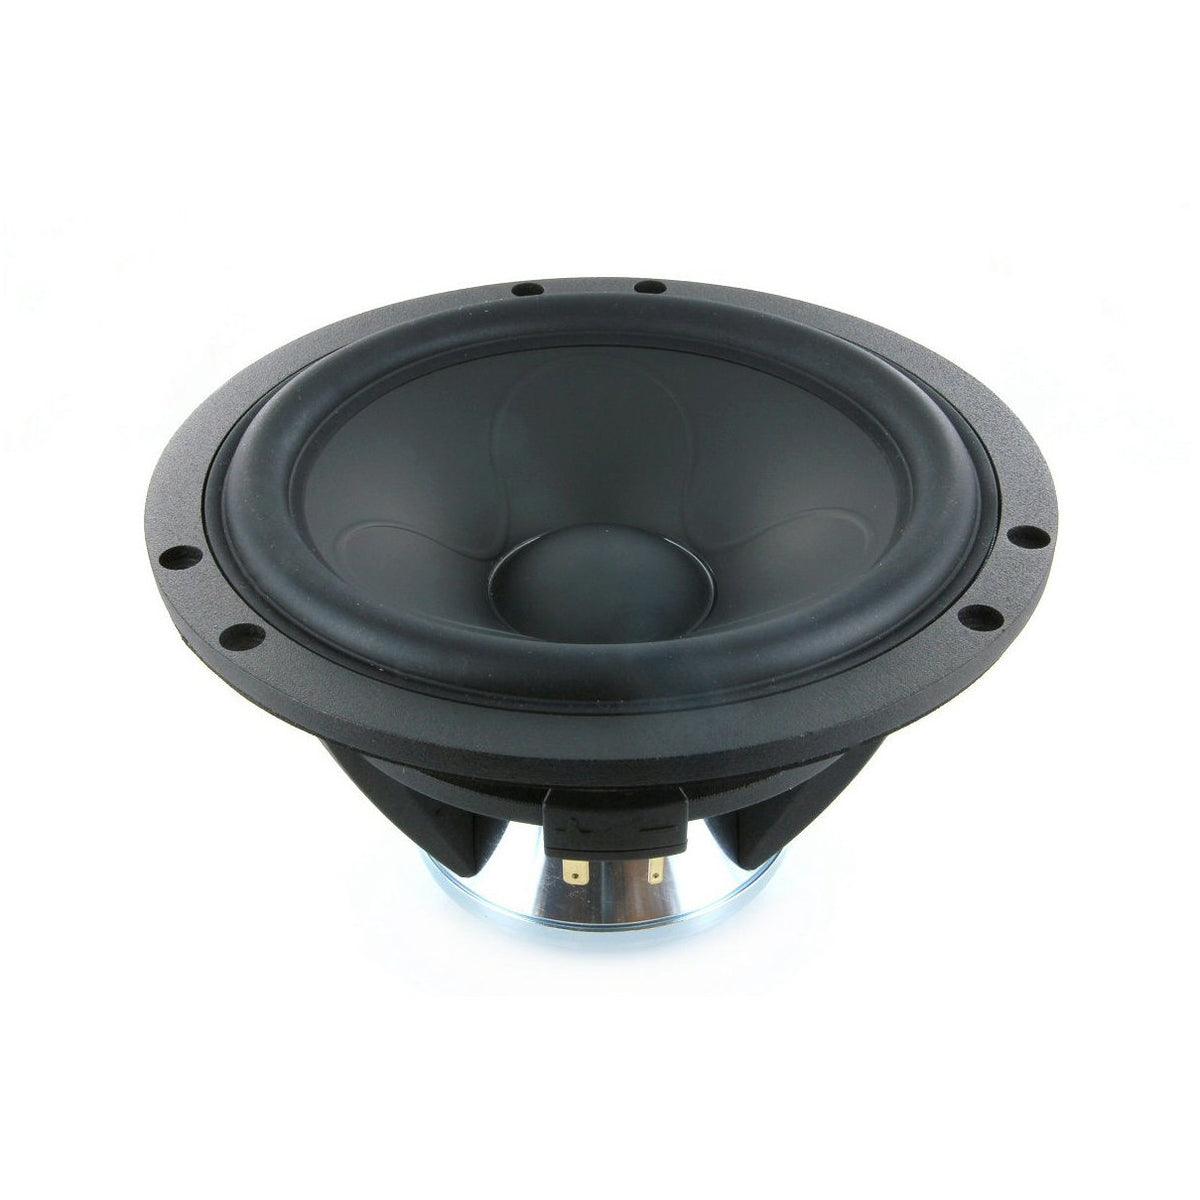 Scanspeak Illuminator 18WU/4747T00 Woofer